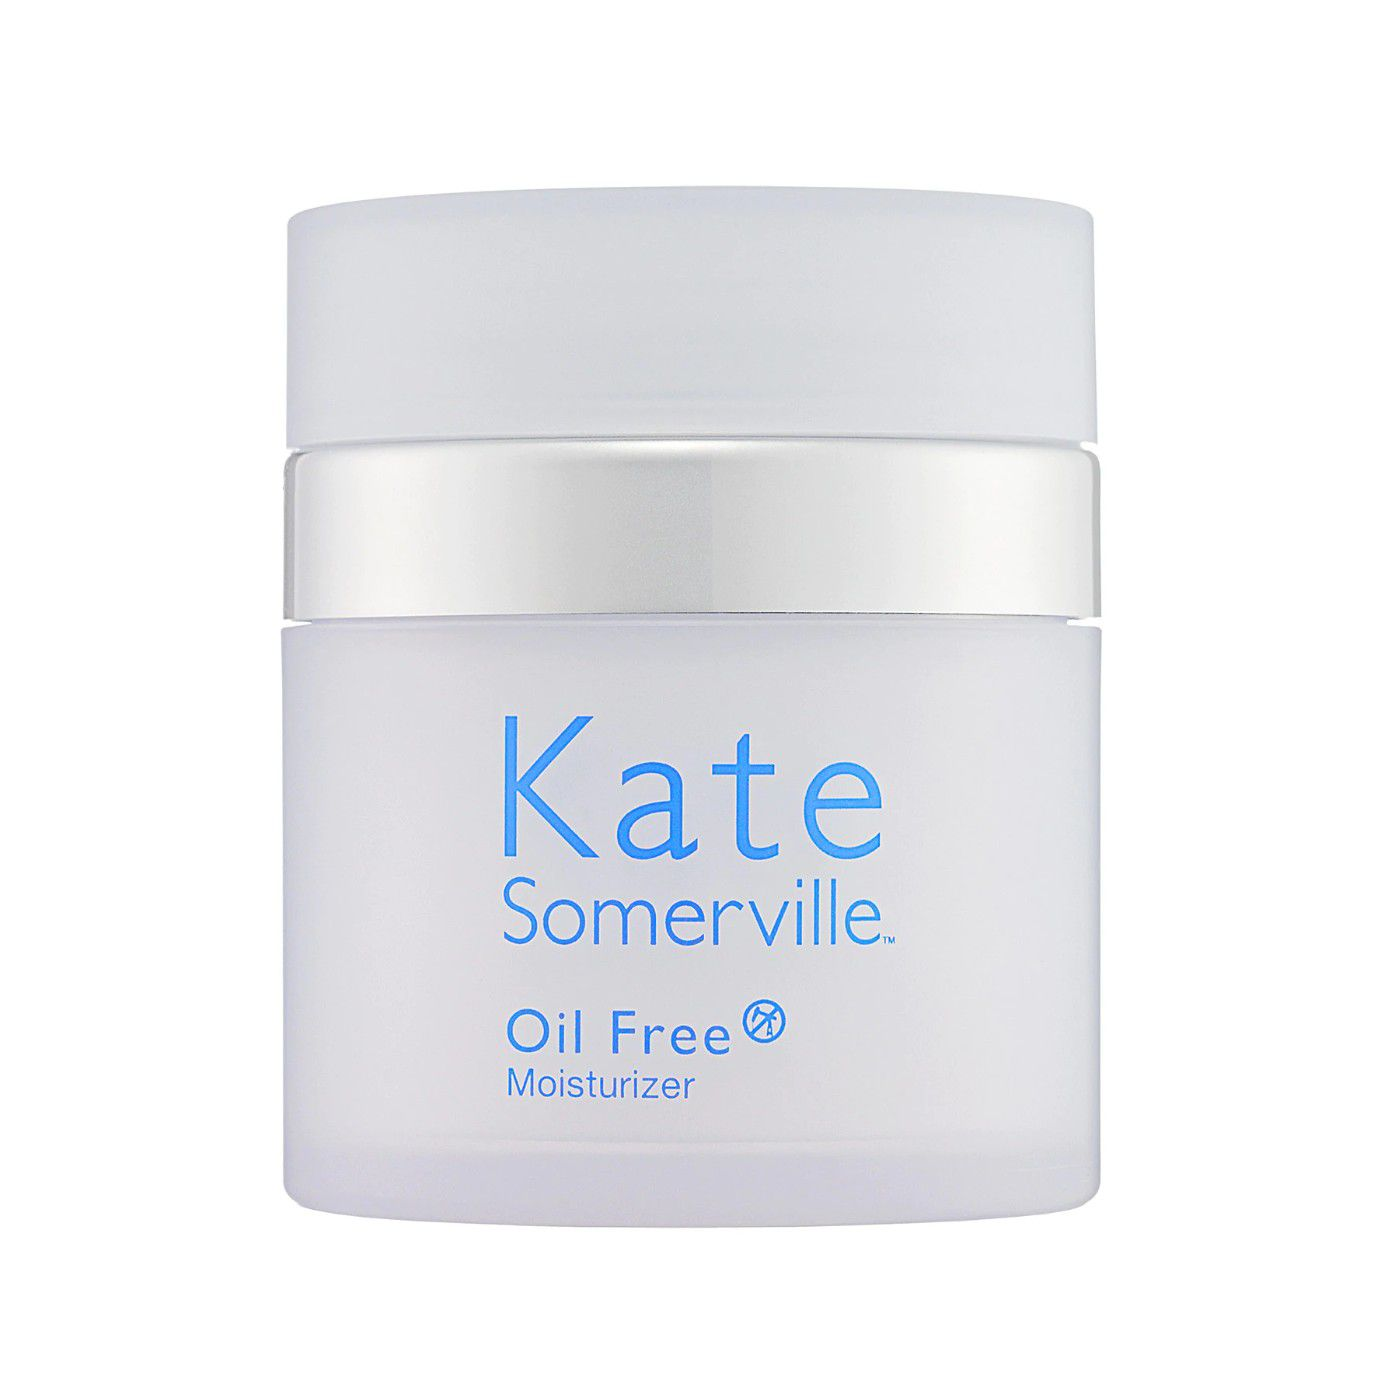 Jar of Kate Somerville Oil Free Moisturizer on a white background.